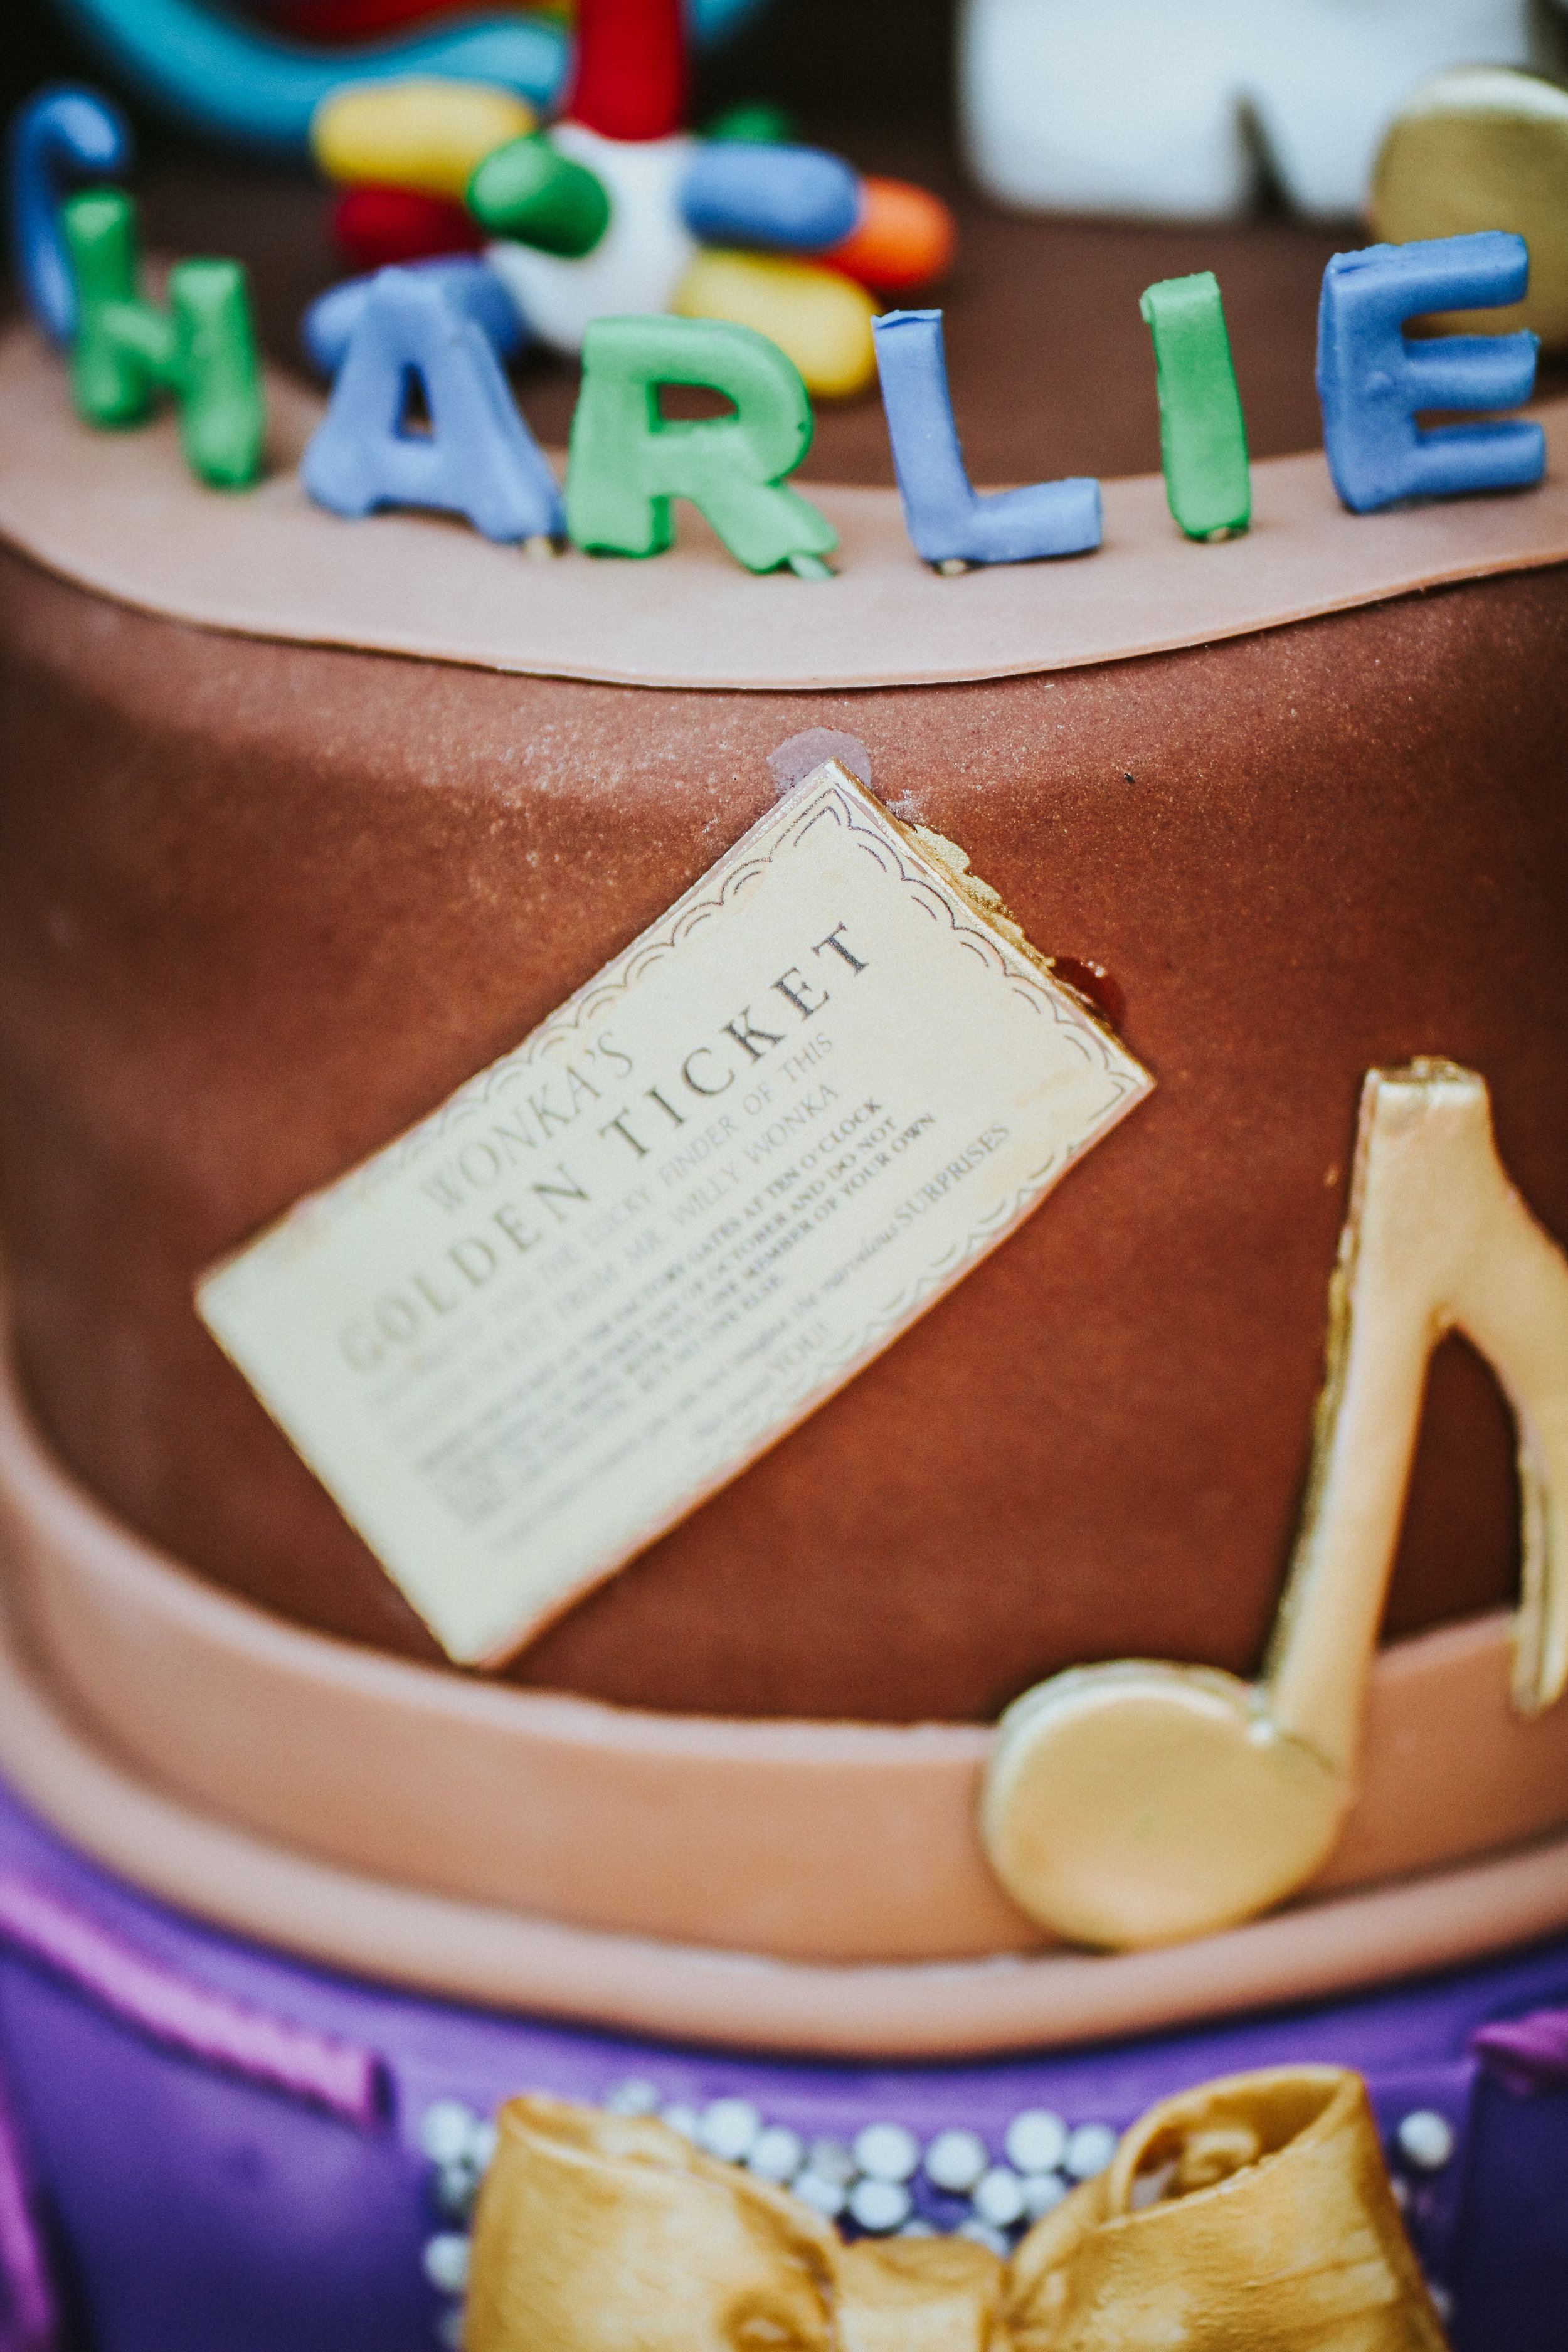 Willy Wonka Themed Birthday Party - Scarlet Plan & Design Atlanta Party Event Planners & Designers (257).jpg